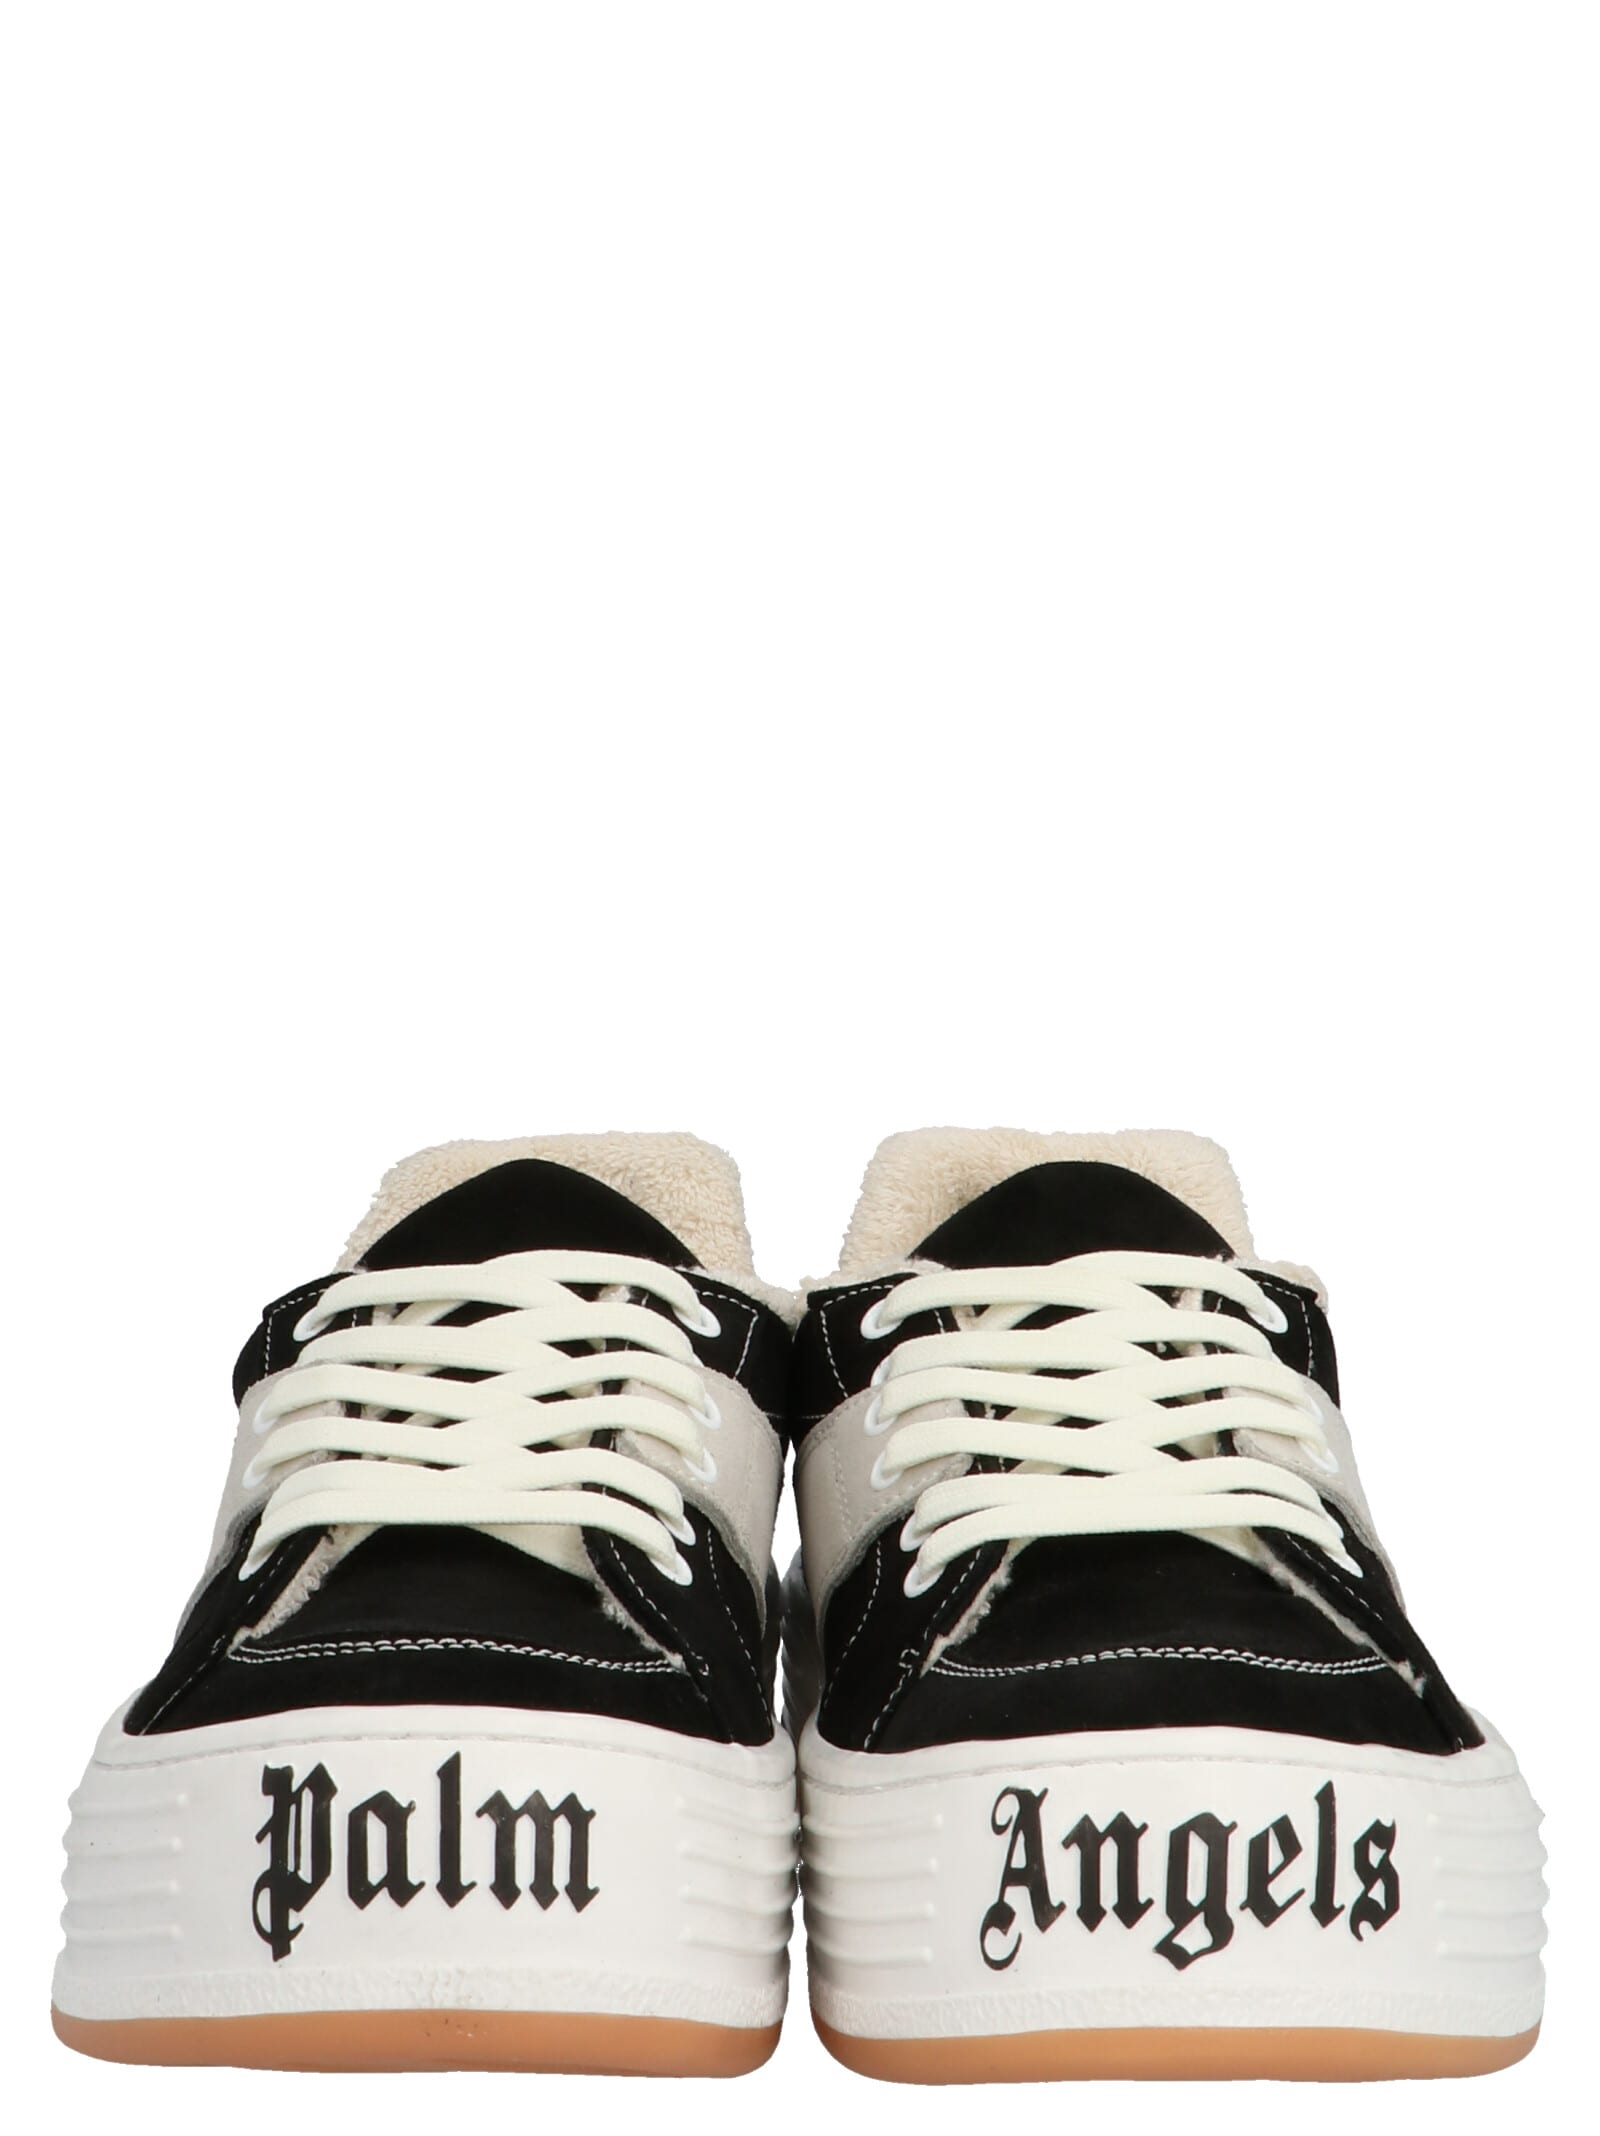 Palm Angels snow Shoes